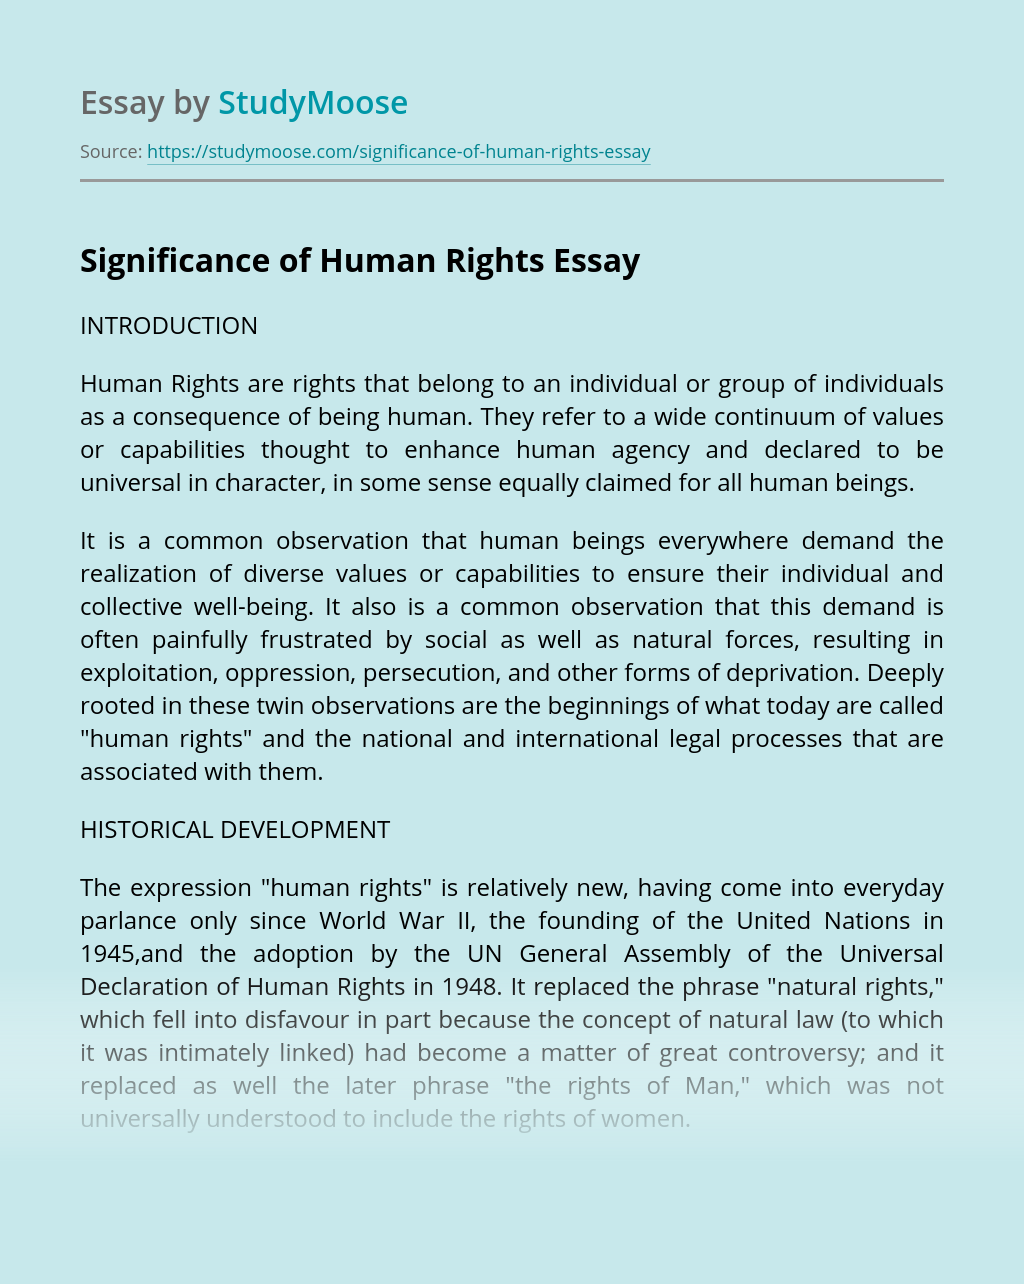 Significance of Human Rights